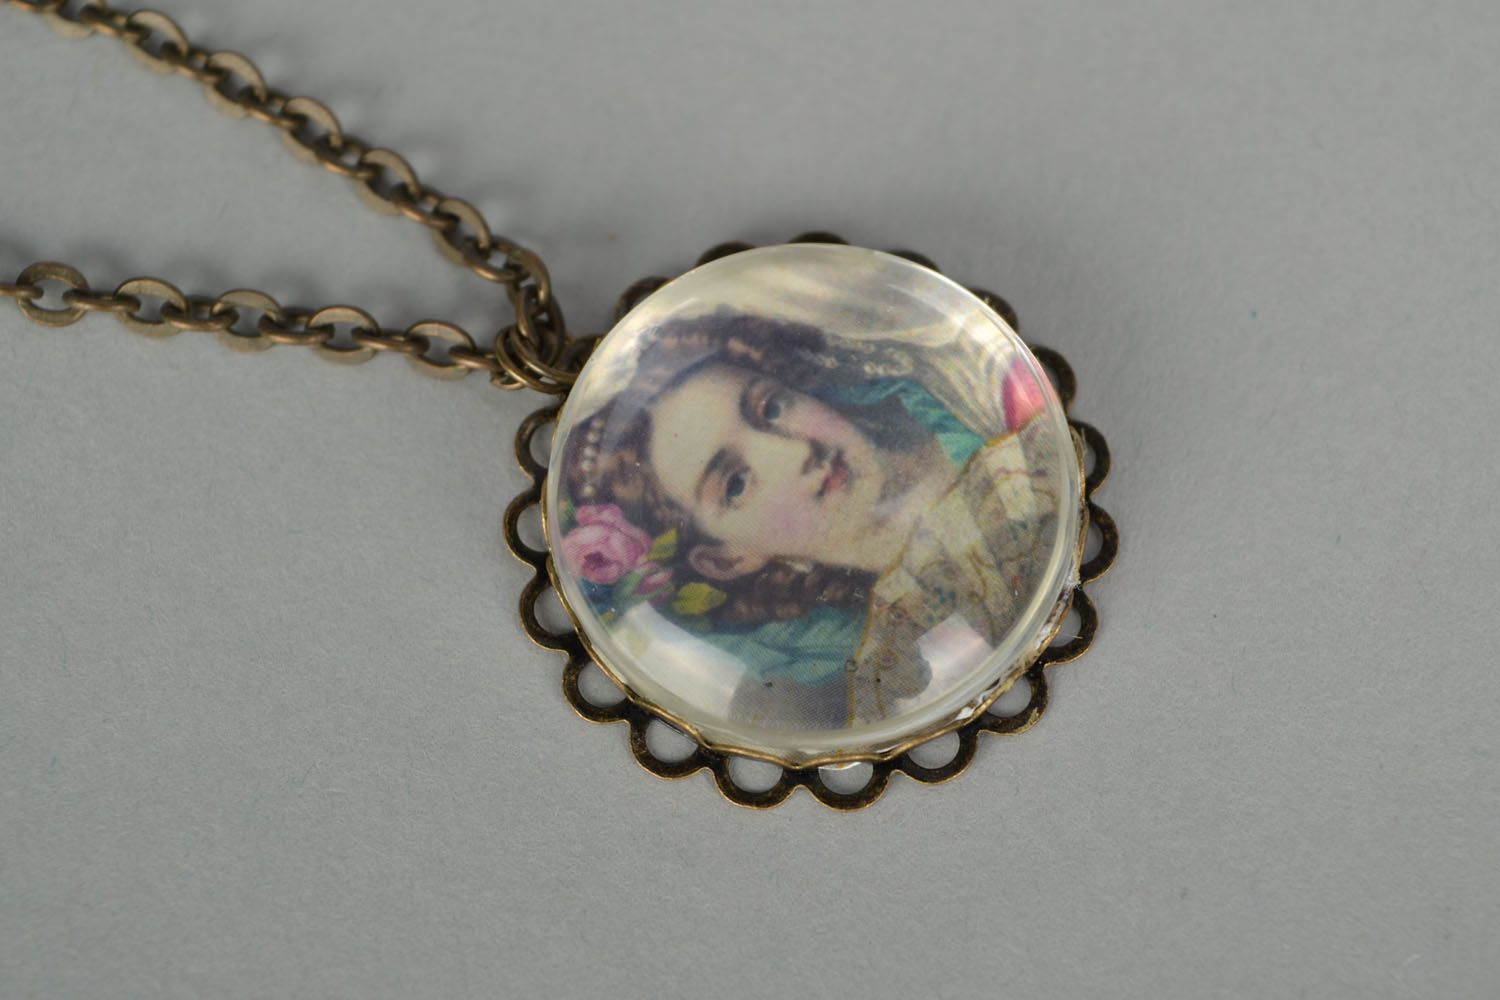 Homemade pendant with long chain photo 3